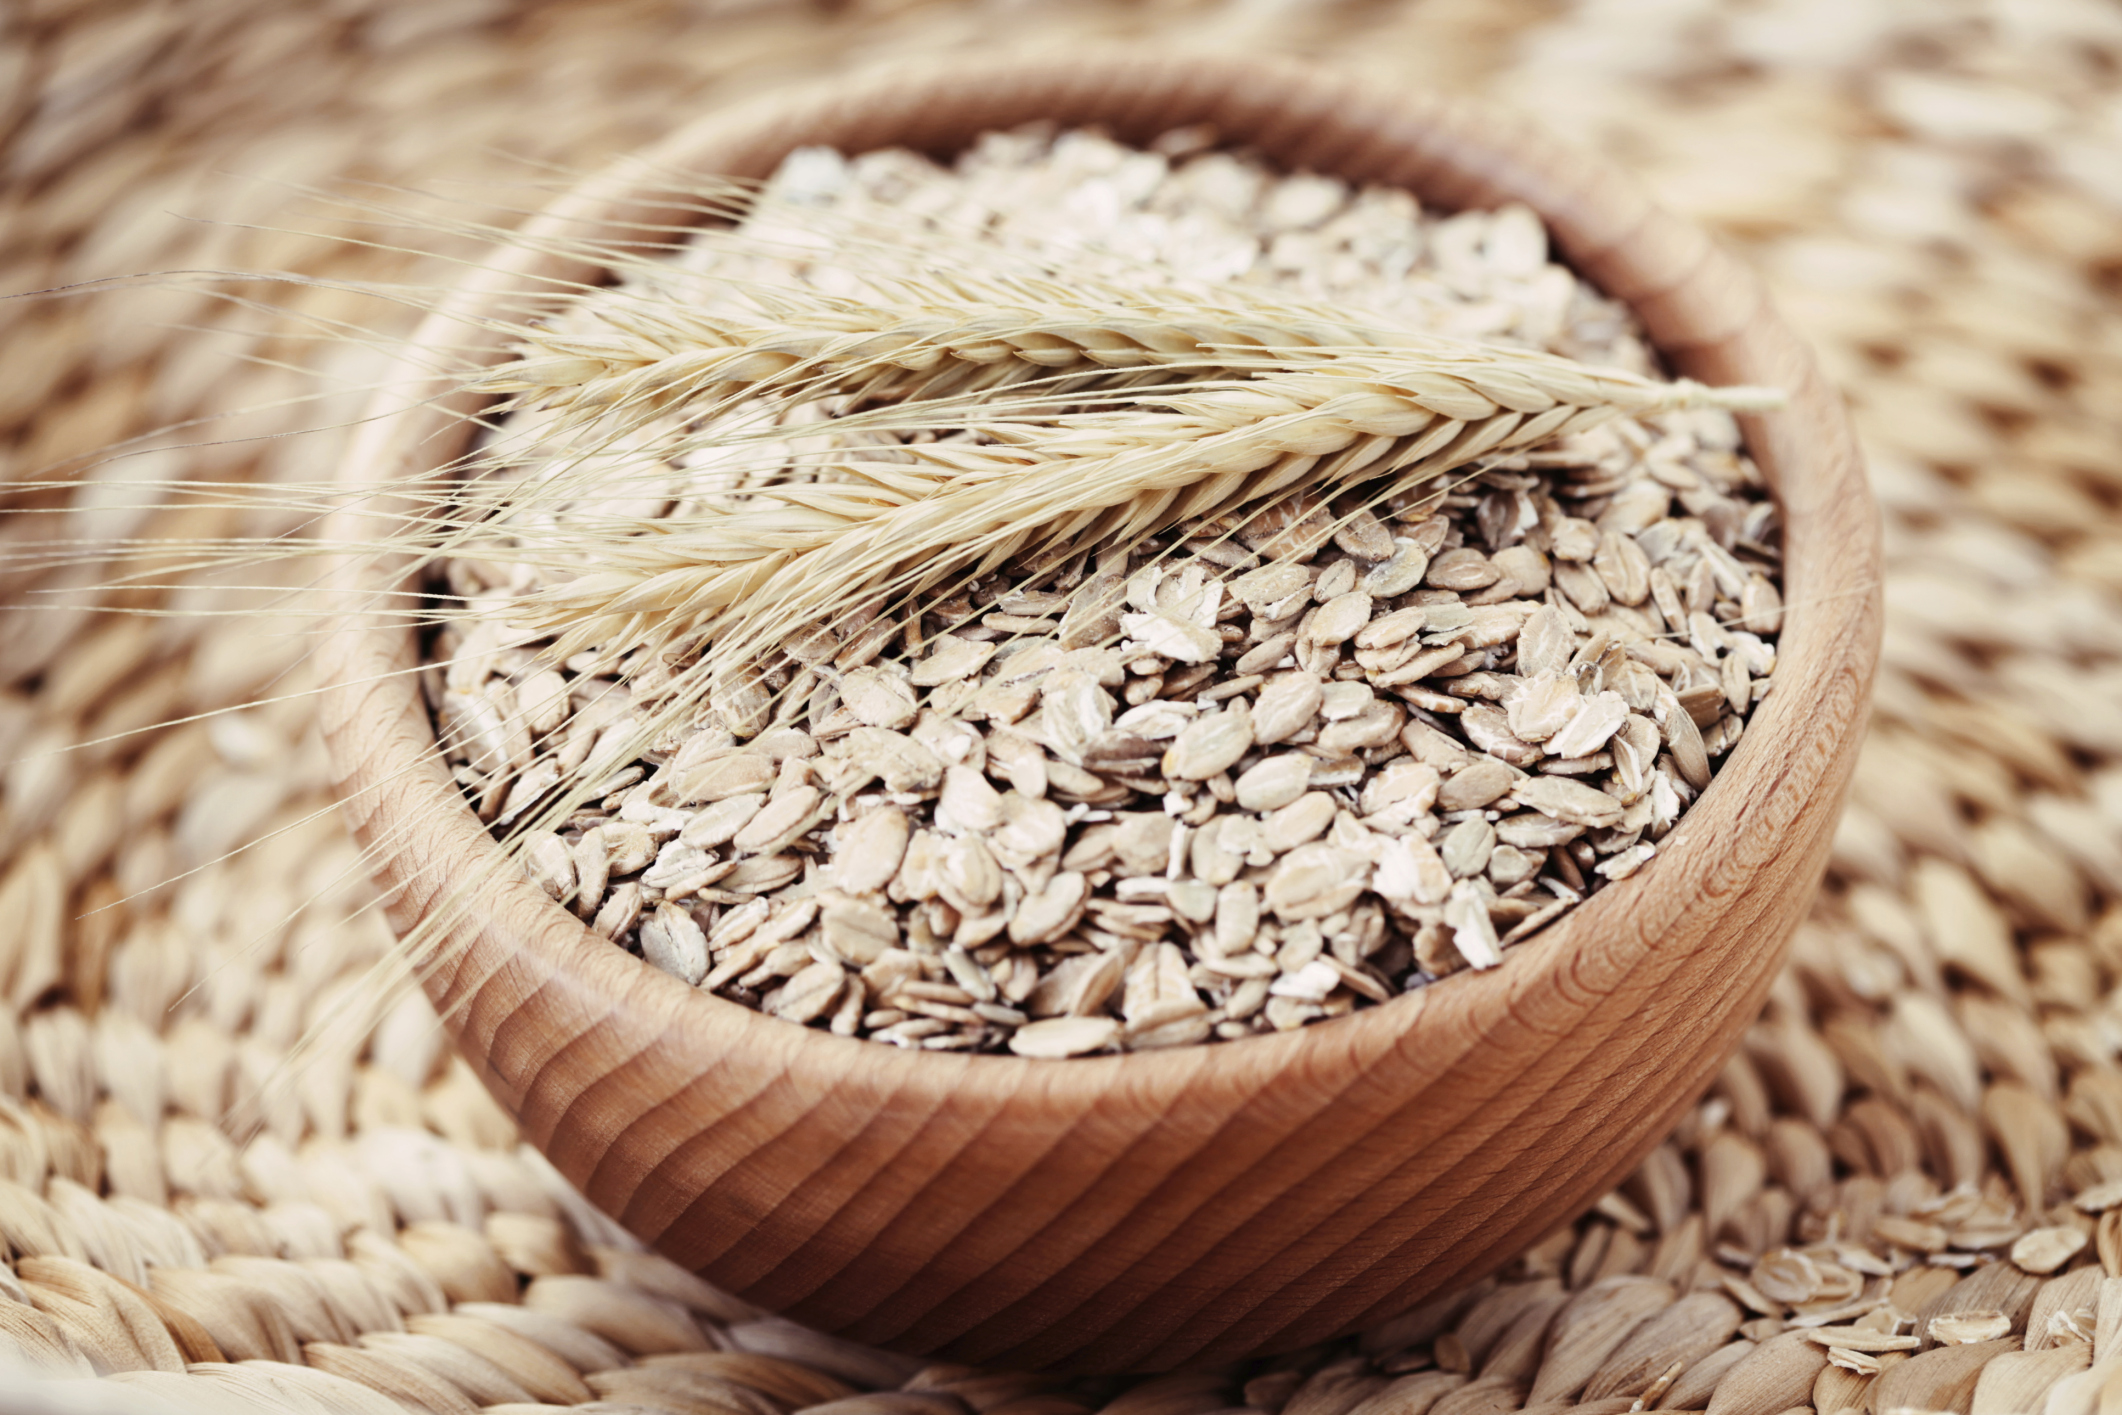 Raw oats - Protein Payout 7 g per ½ cupYou know how bomb overnight oats are for your body, schedule and taste buds, but what if you could toss them into a blender and reap the benefits? You can. Quick reminder: Research says replacing just 5 percent of the day's carbs with a source of resistant starch (like raw oats) can boost post-meal fat burn by as much as 30 percent!